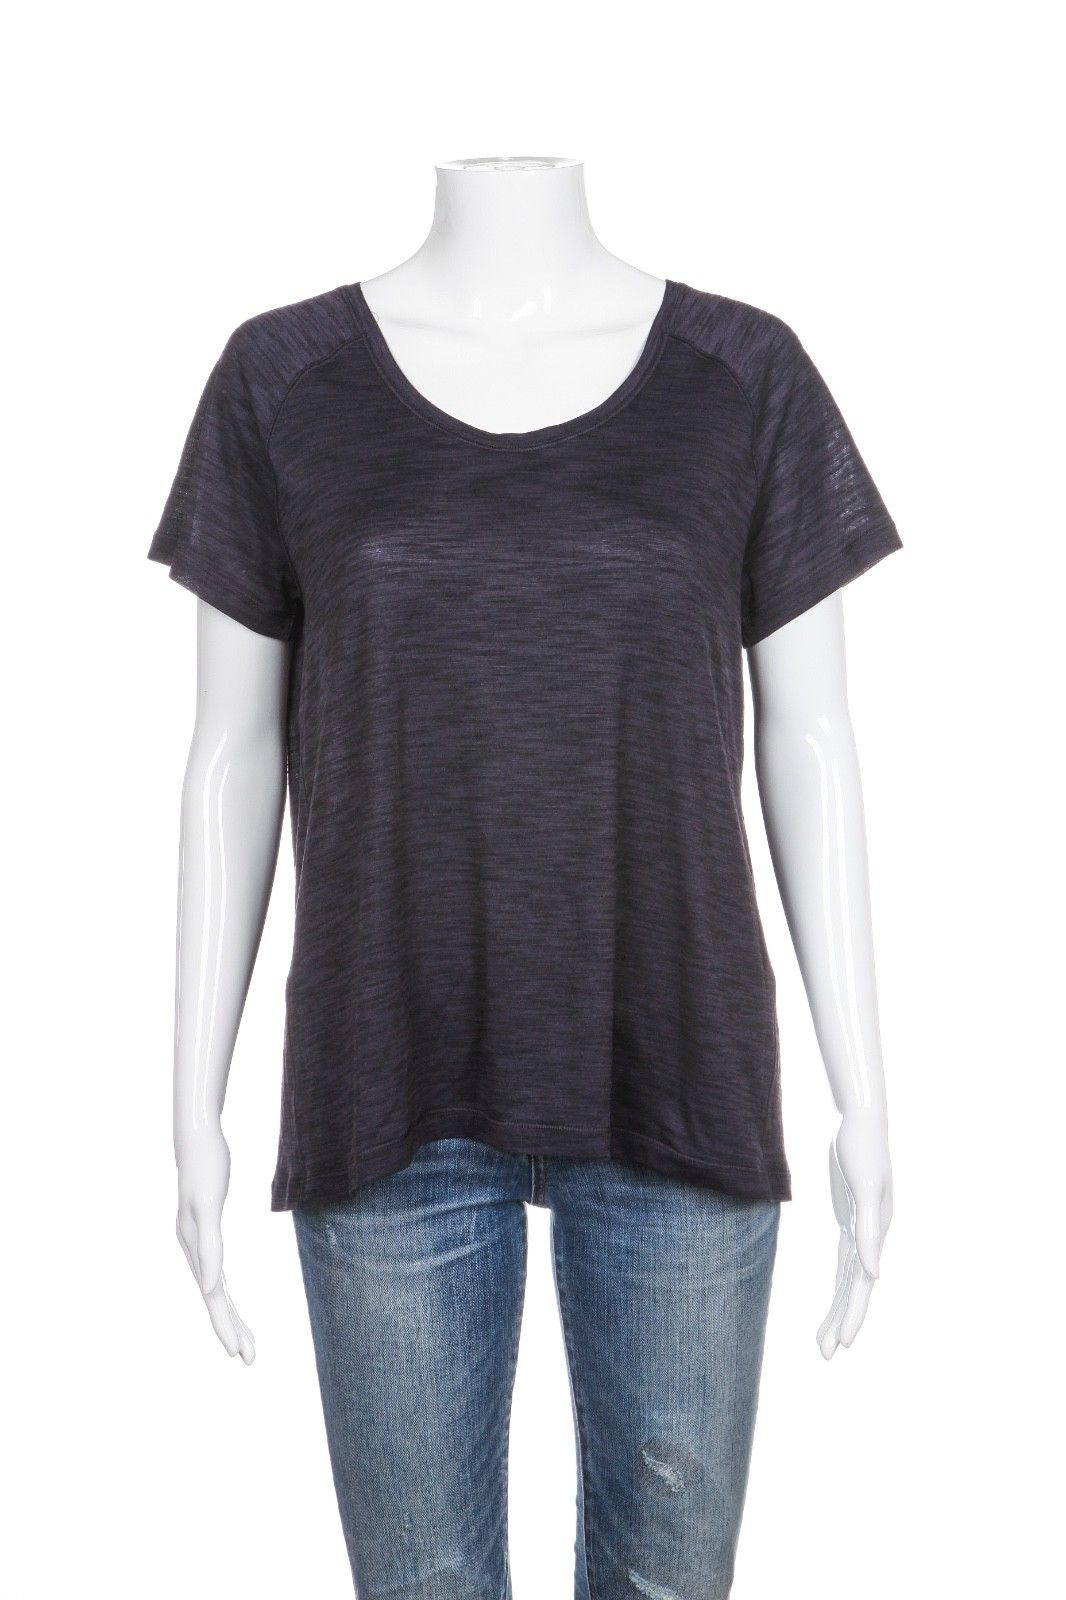 LULULEMON Back In Action Short Sleeve Tee Heathered Purple Black